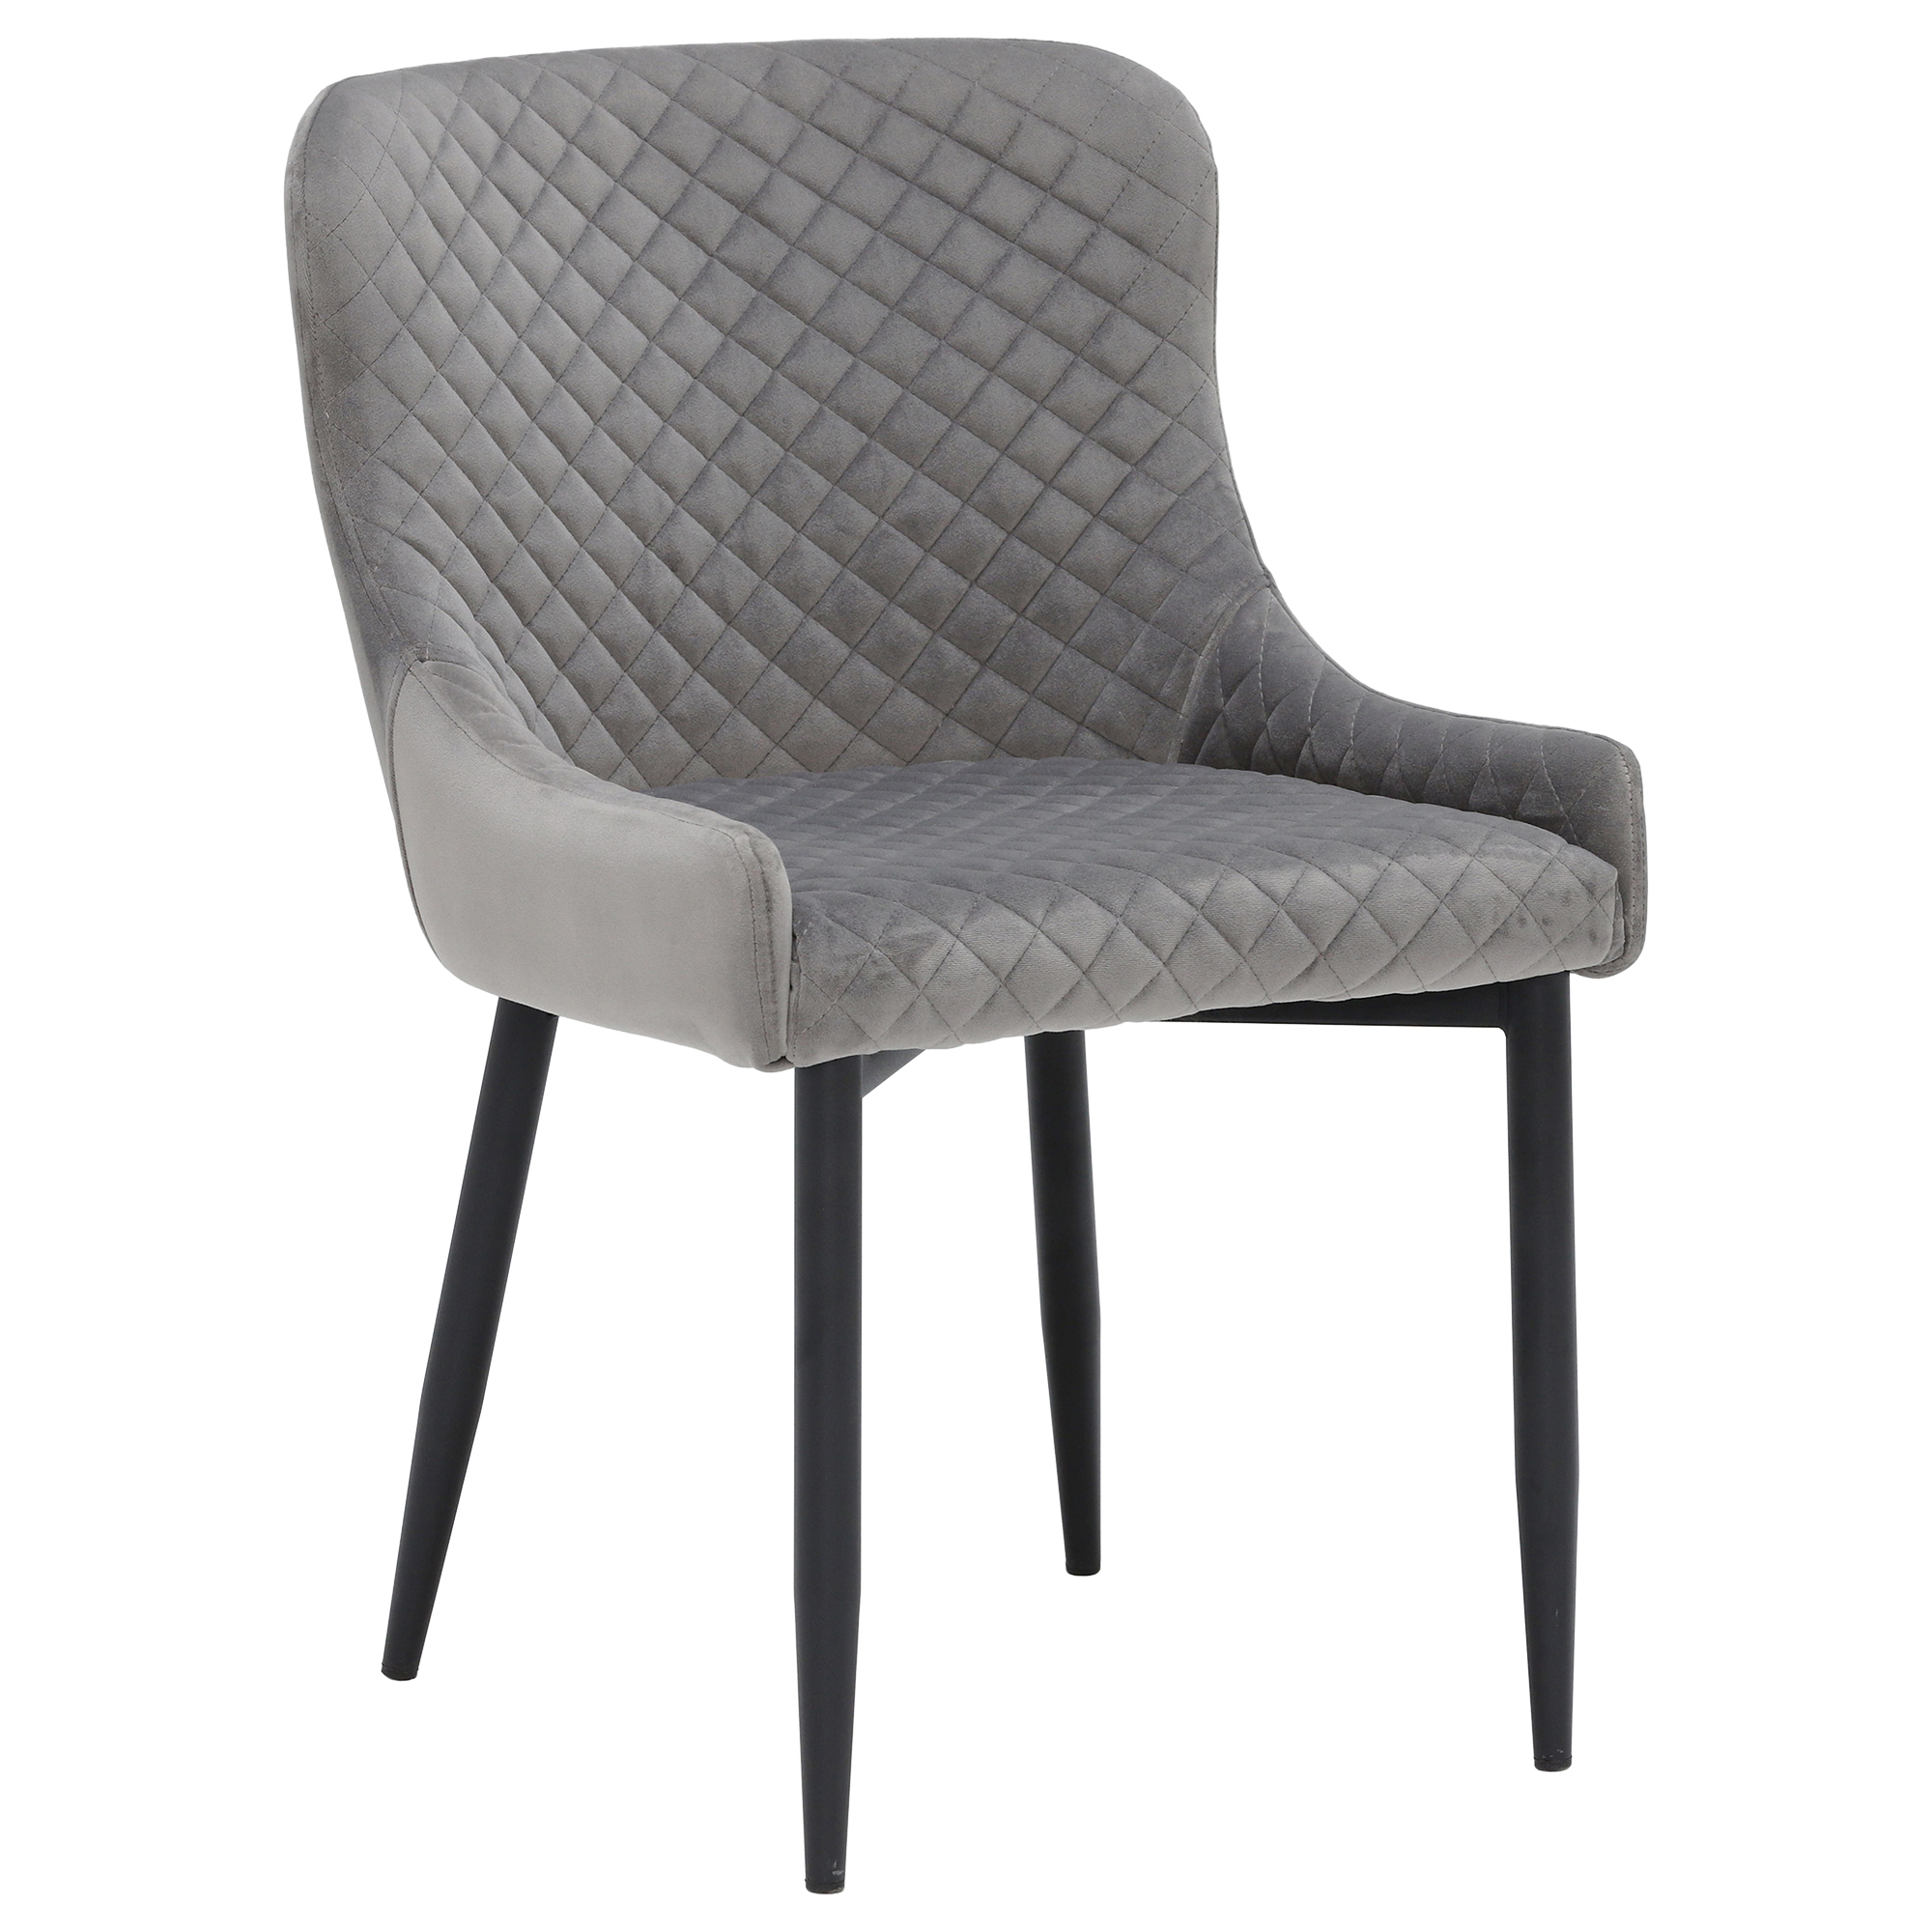 Gray FABRIC DINING ARMCHAIR Comfy